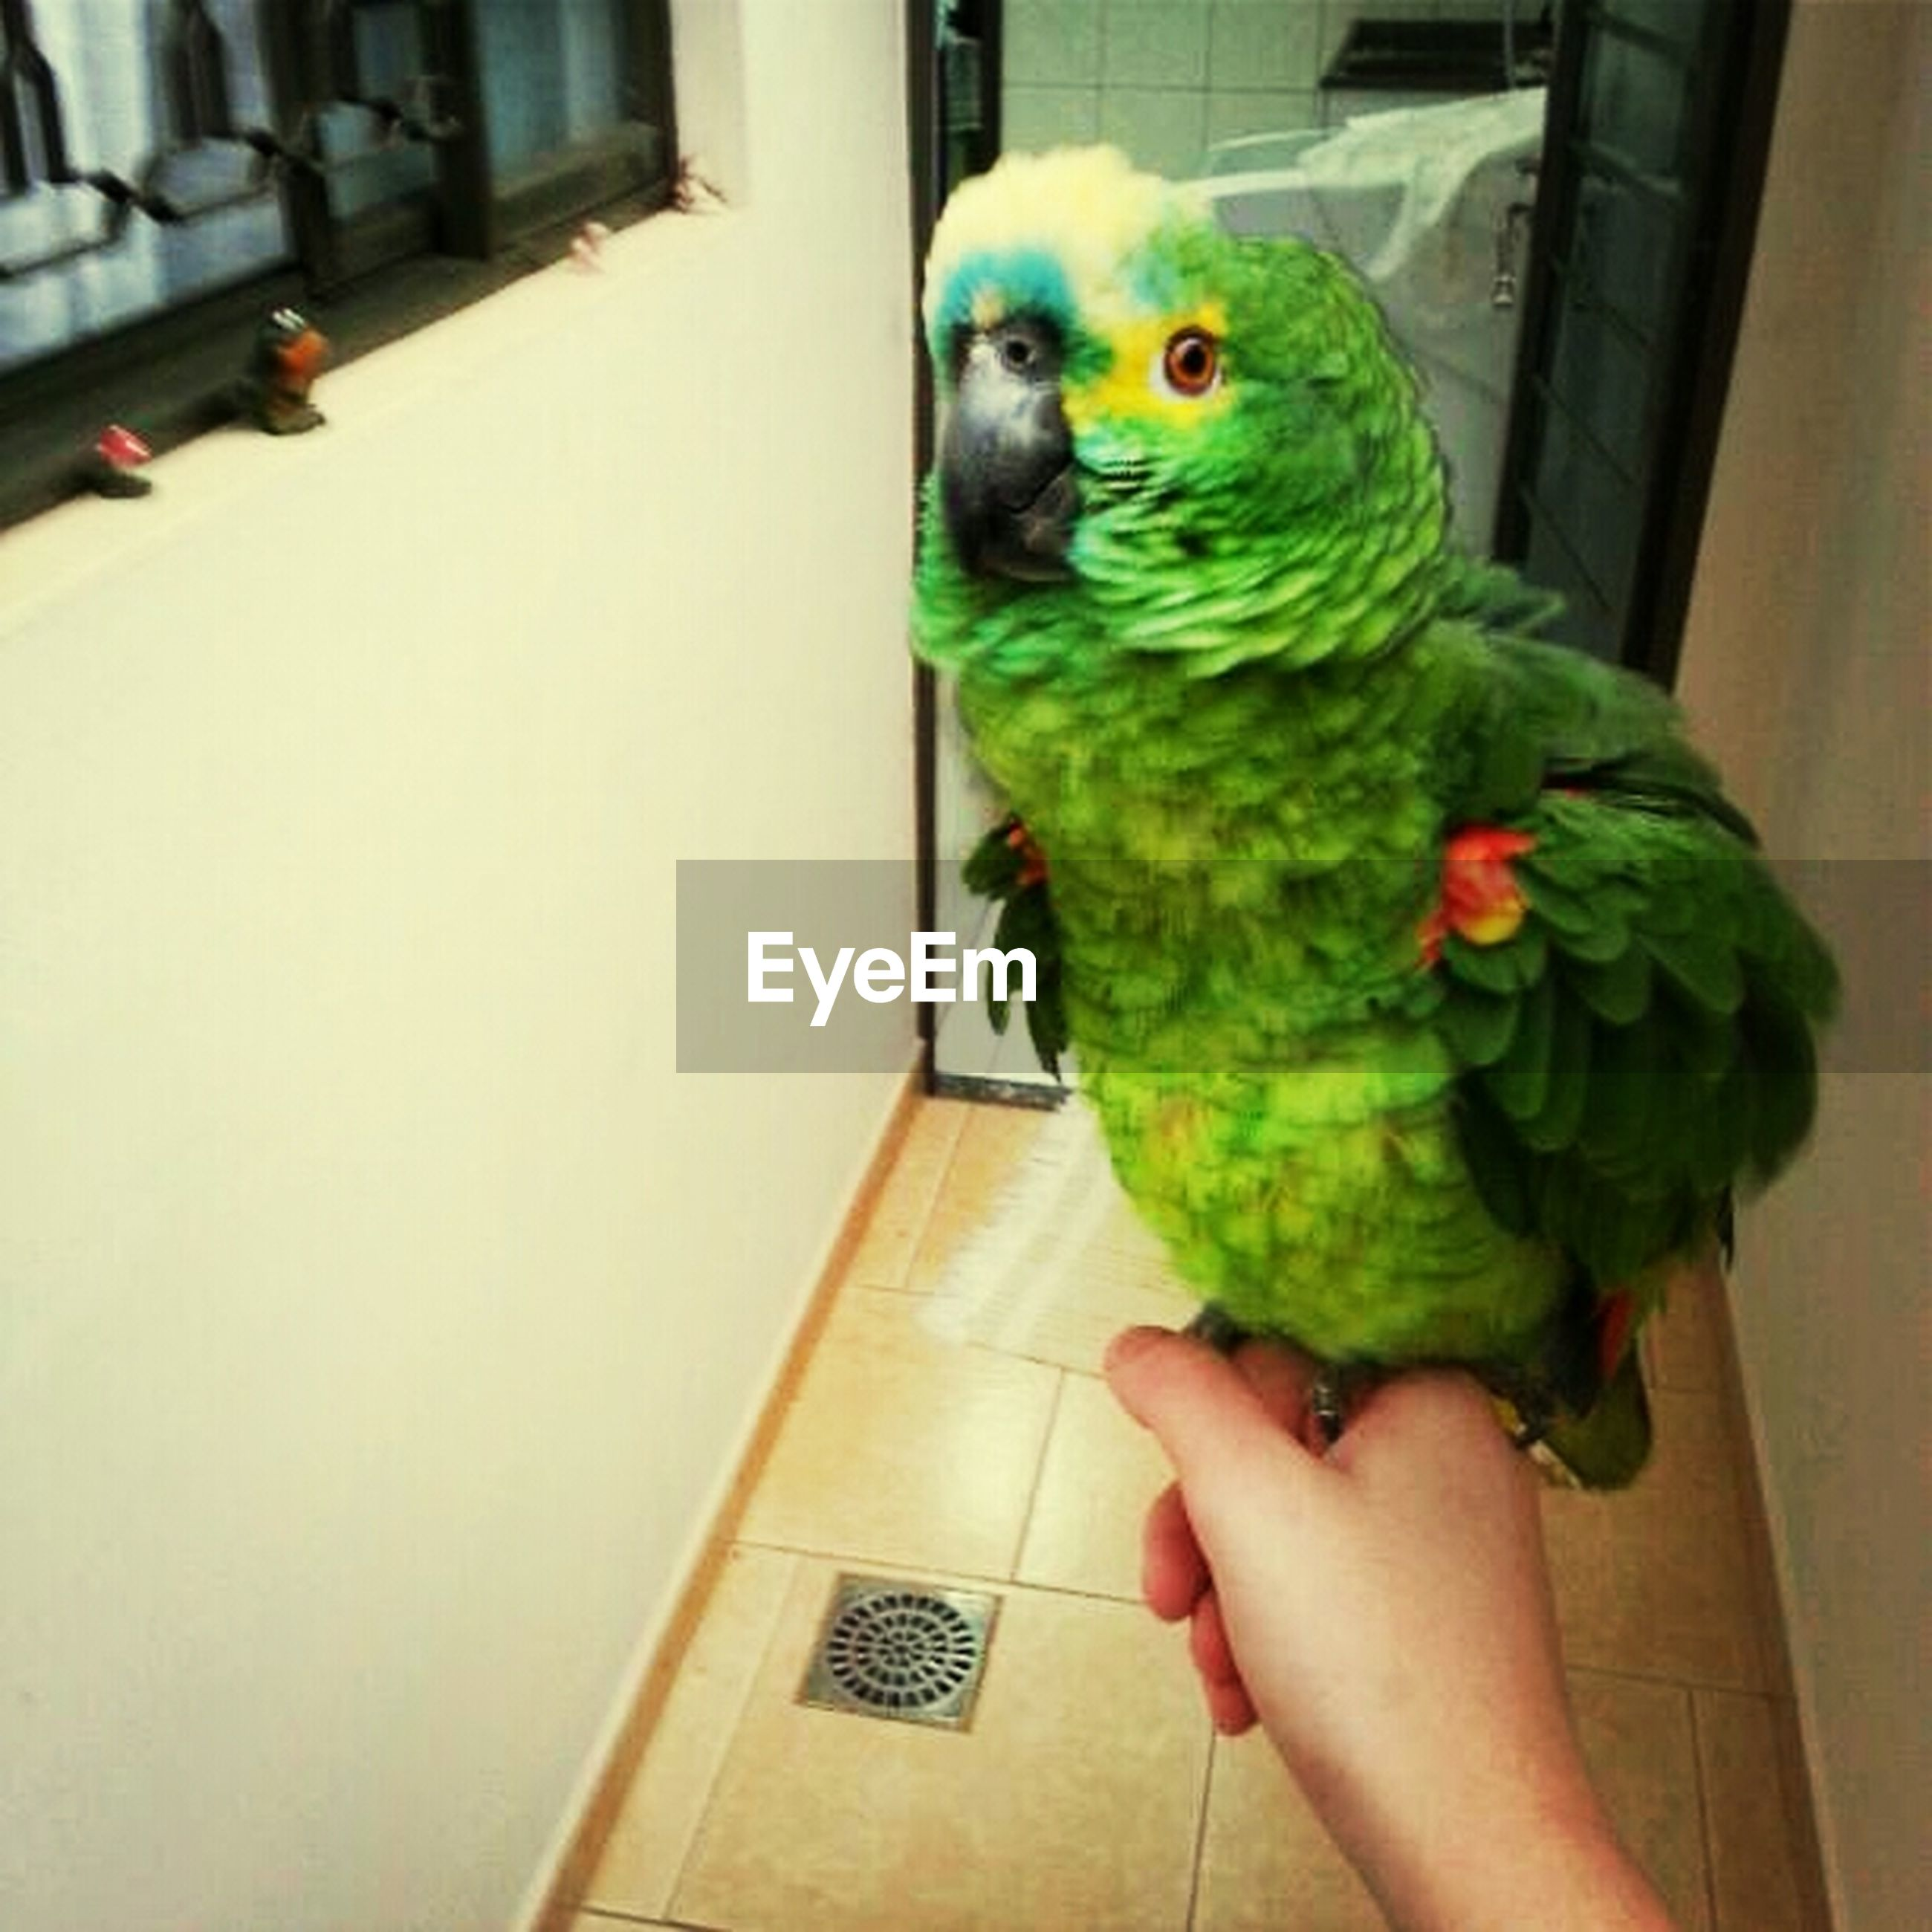 animal themes, one animal, bird, indoors, pets, parrot, holding, person, wildlife, animals in the wild, full length, green color, perching, unrecognizable person, close-up, multi colored, domestic animals